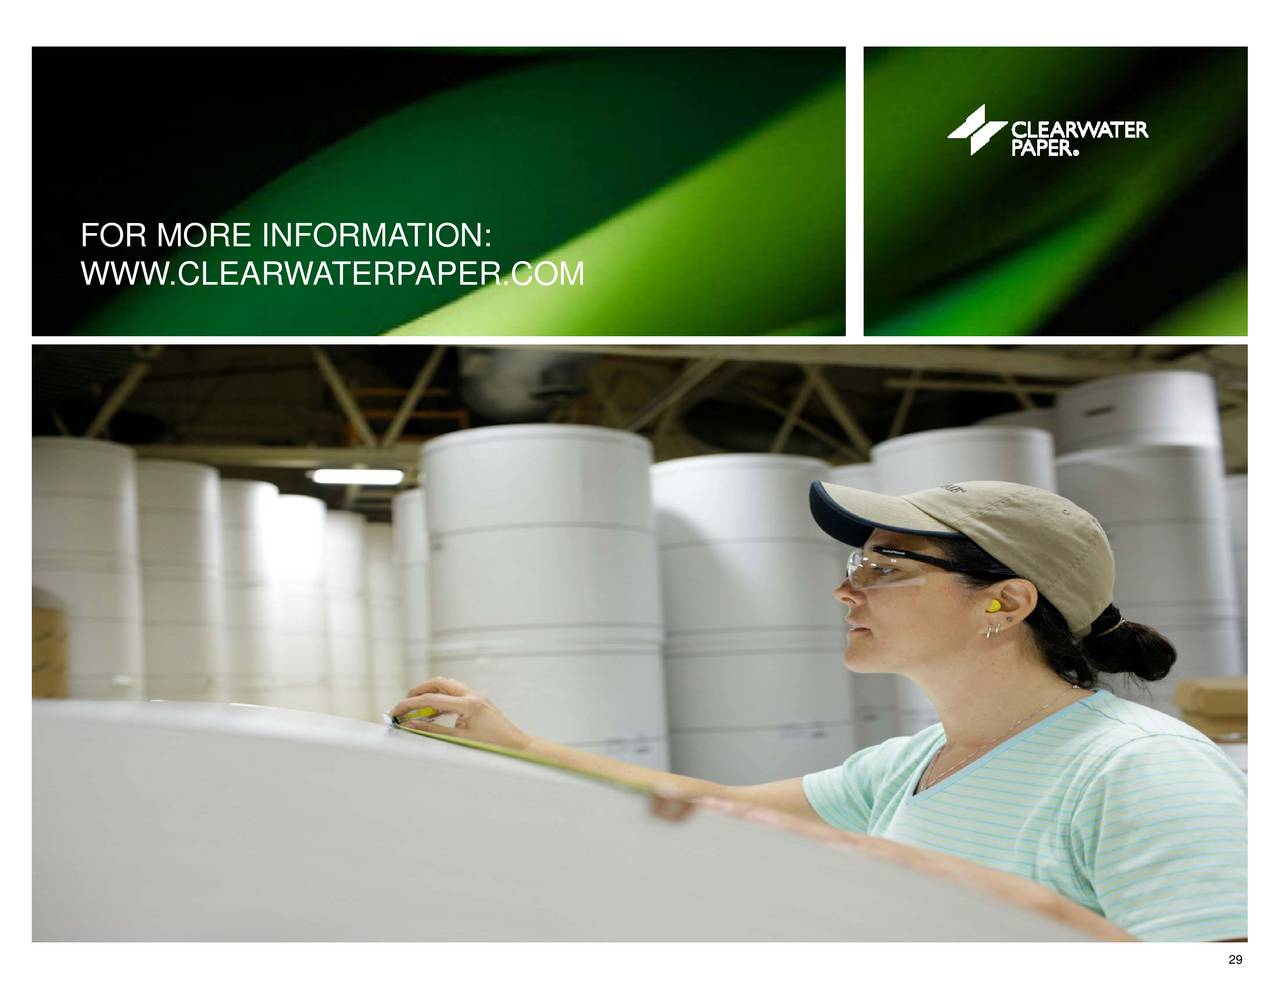 clearwater paper corp View clearwater paper corporation clw investment & stock information get the latest clearwater paper corporation clw detailed stock quotes, stock data, real-time ecn, charts, stats and.